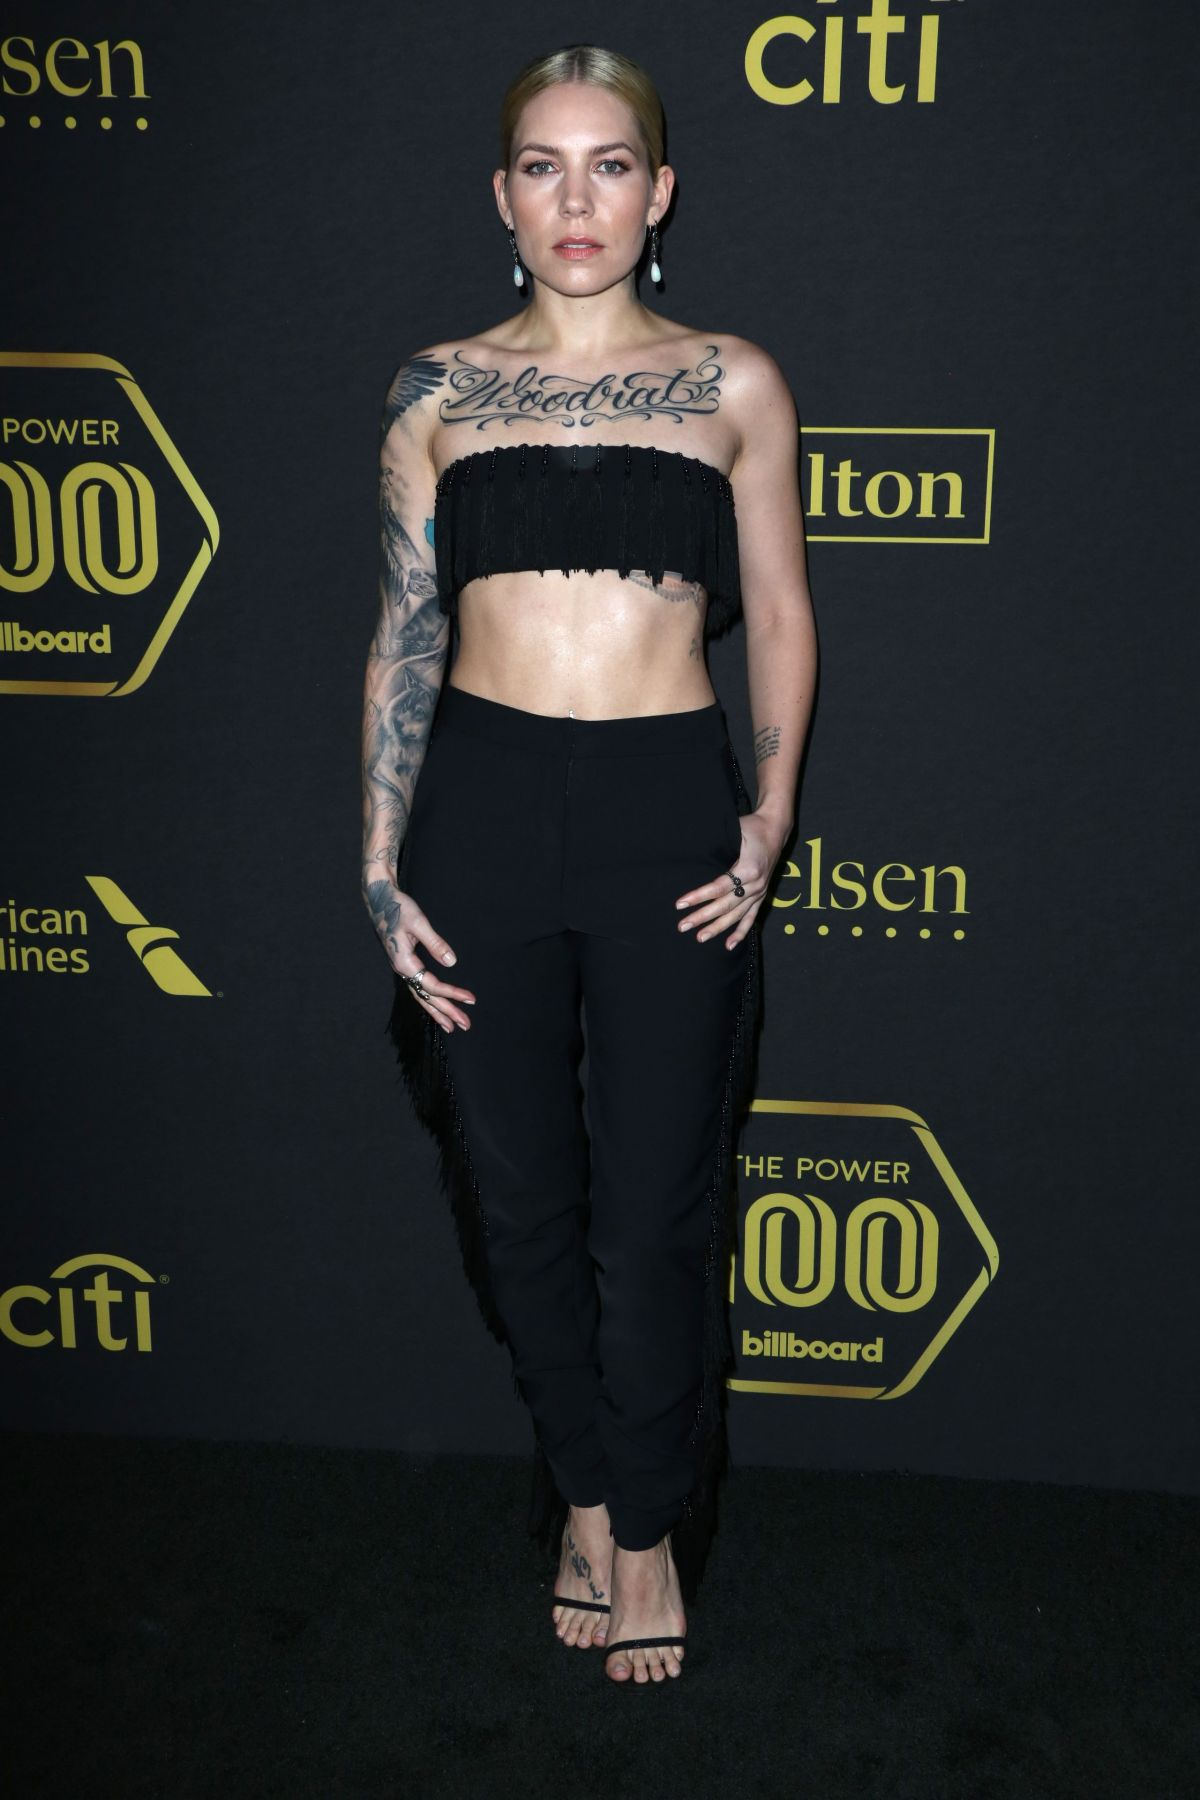 SKYLAR GREY at Billboard Power 100 in West Hollywood 02/09/2017